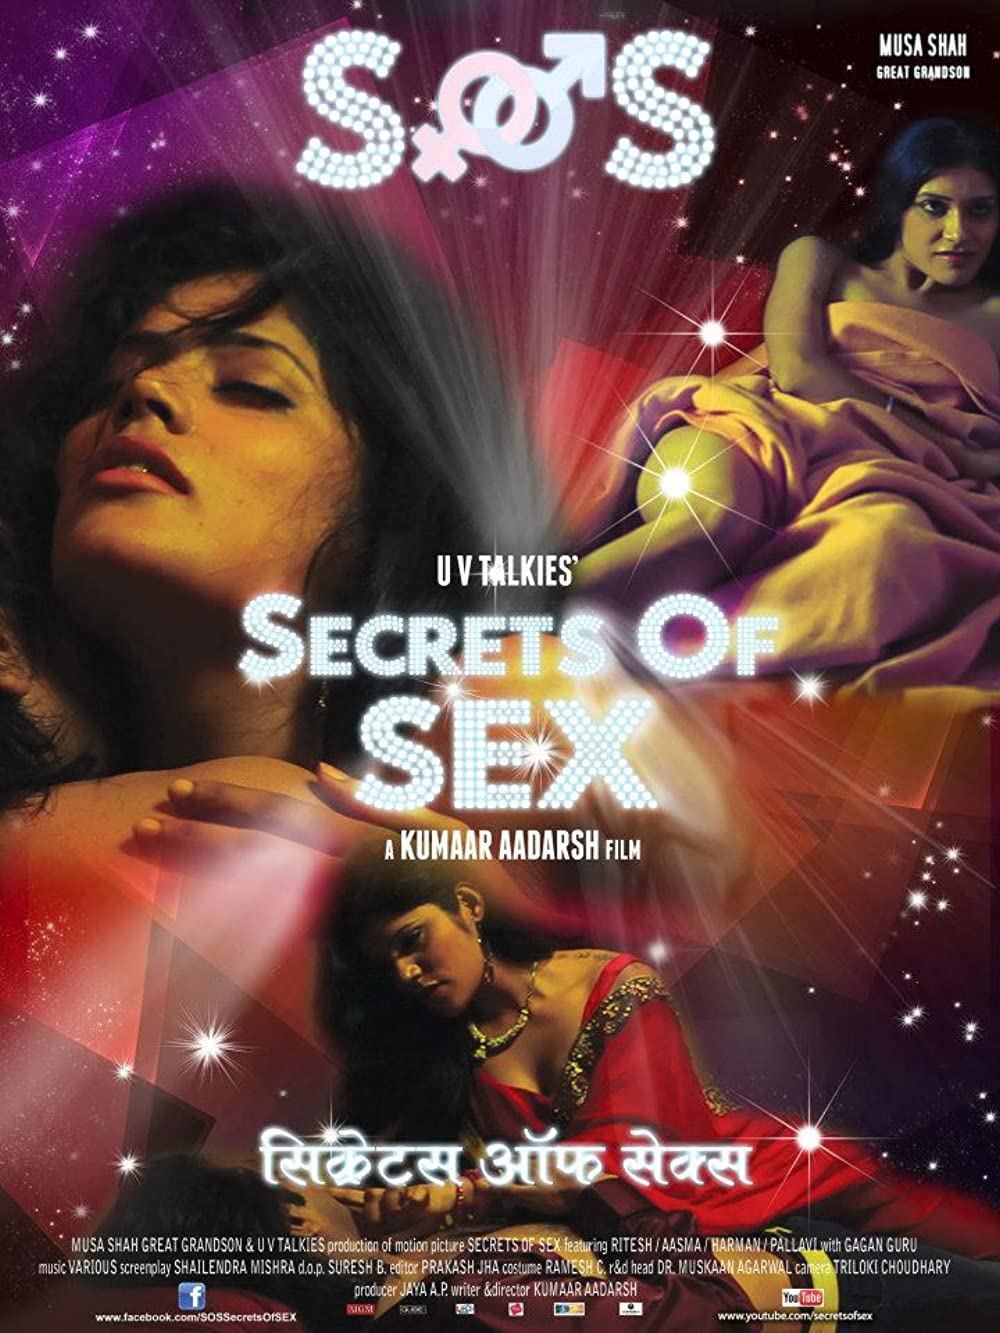 18+ SOS Secrets of Sex 2013 Hindi 480p HDRip ESubs 350MB x264 AAC